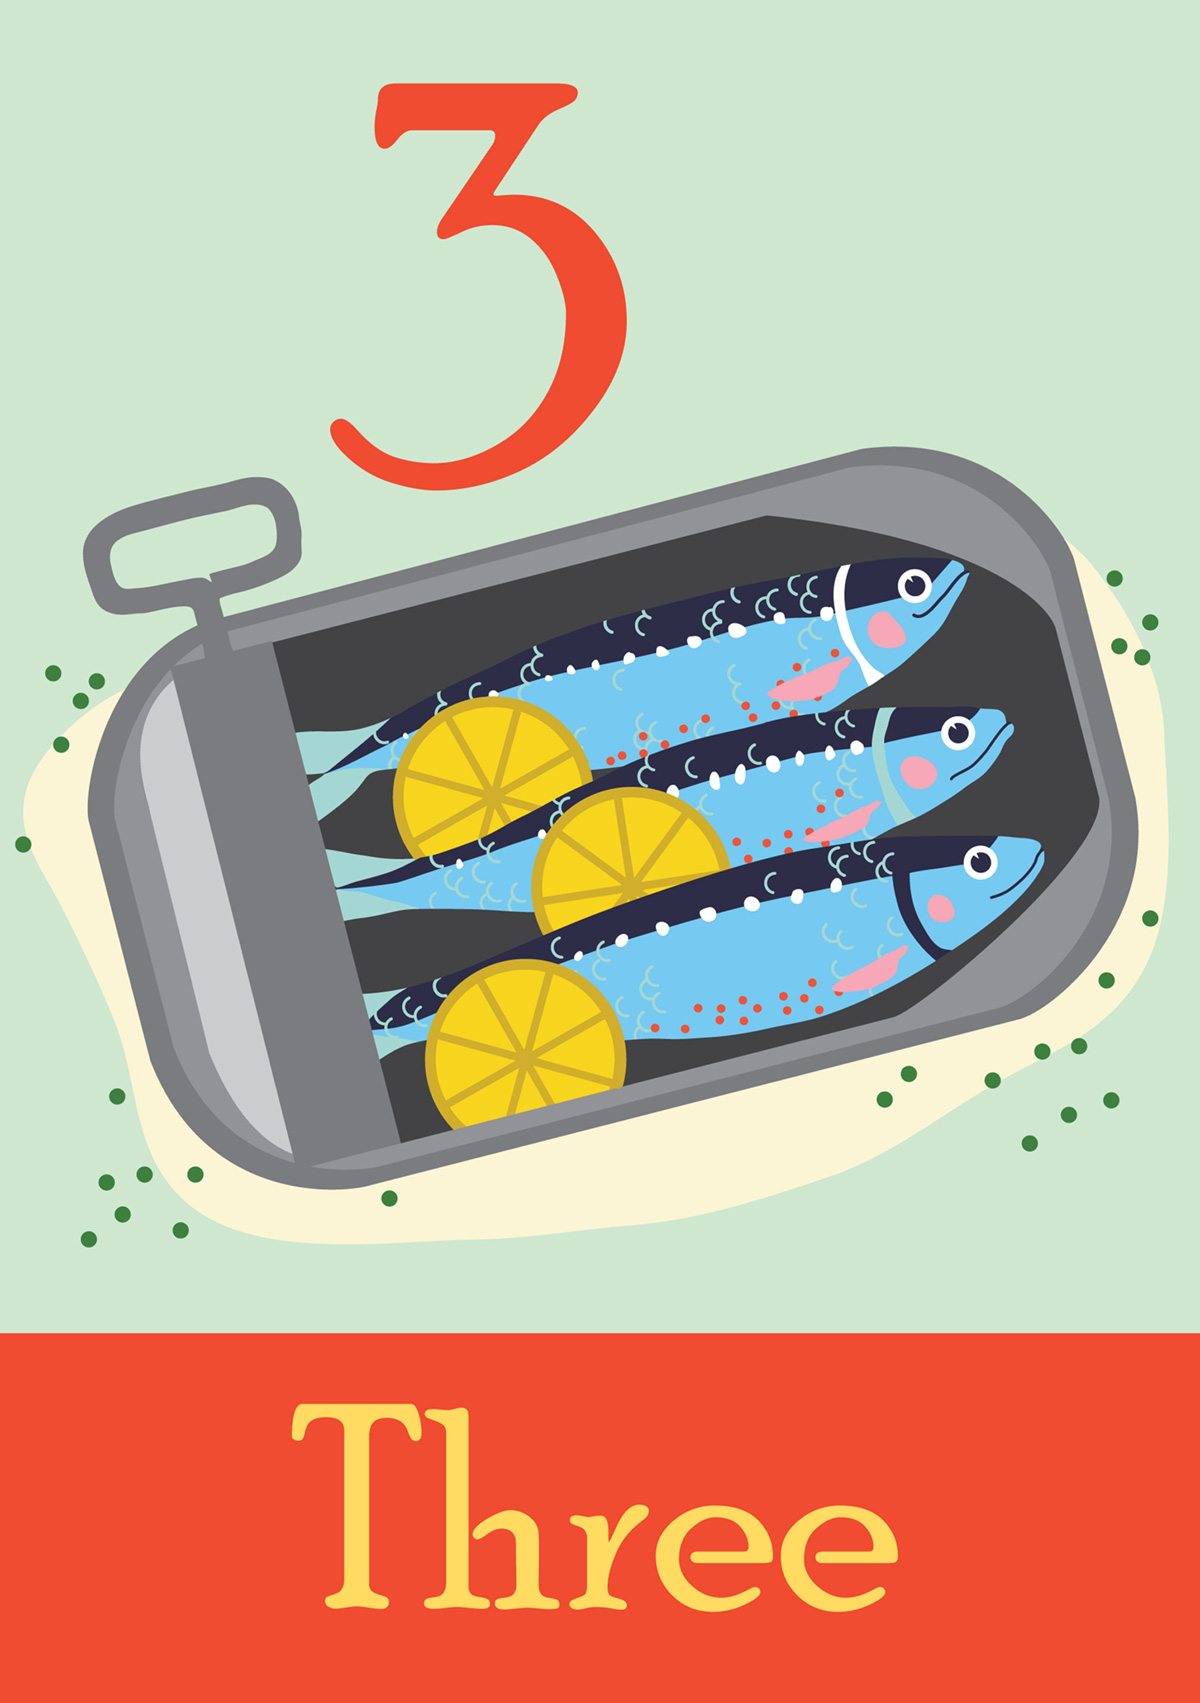 Digital illustration of three little fishes